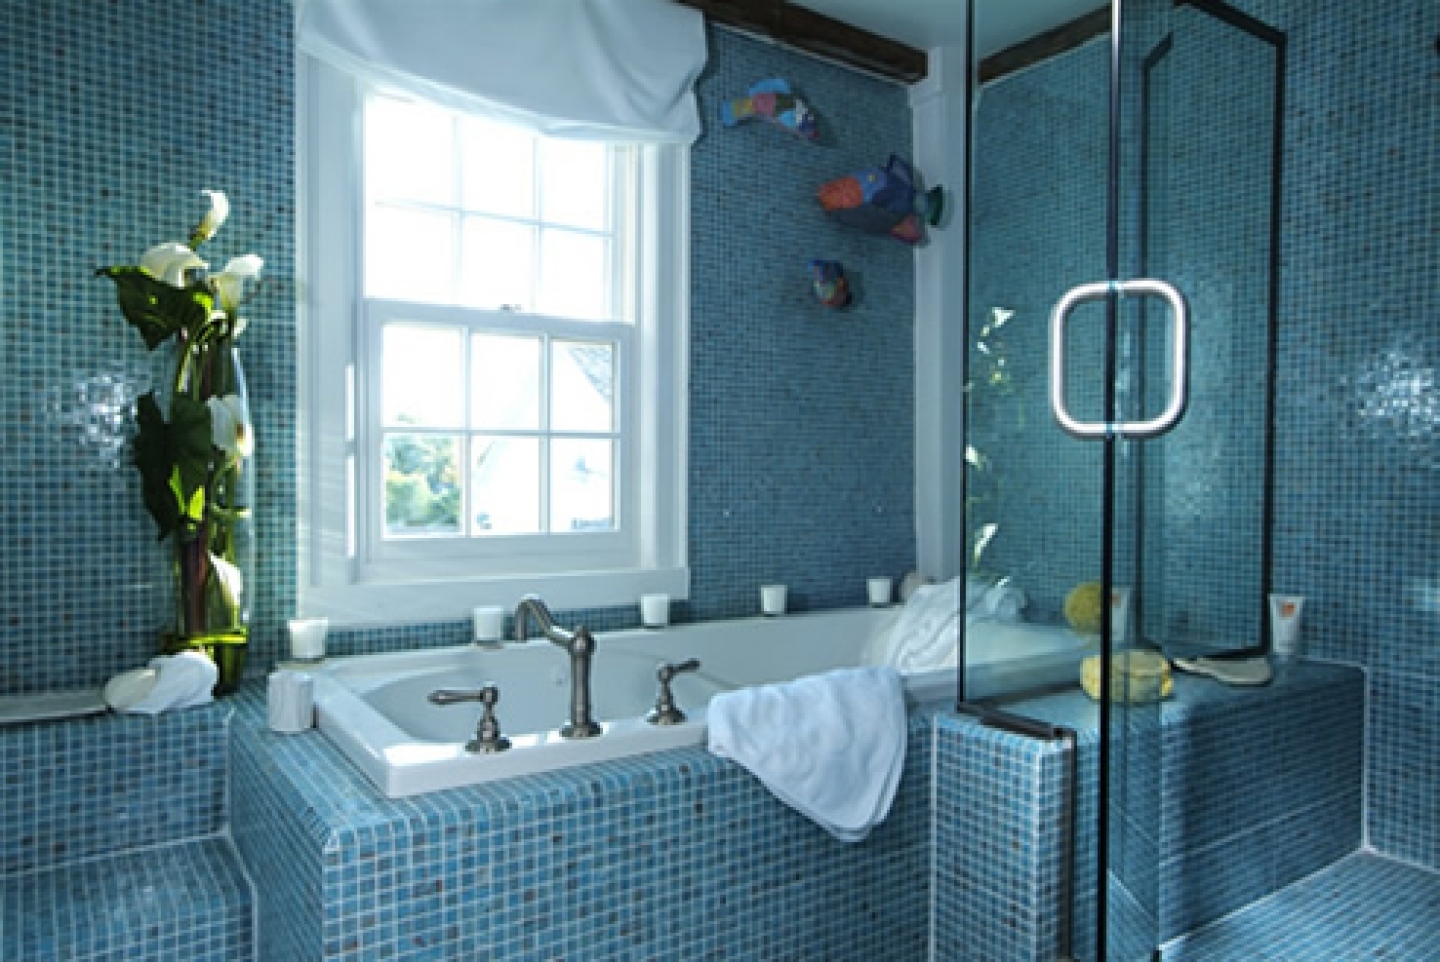 40 vintage blue bathroom tiles ideas and pictures for Bathroom ideas in blue